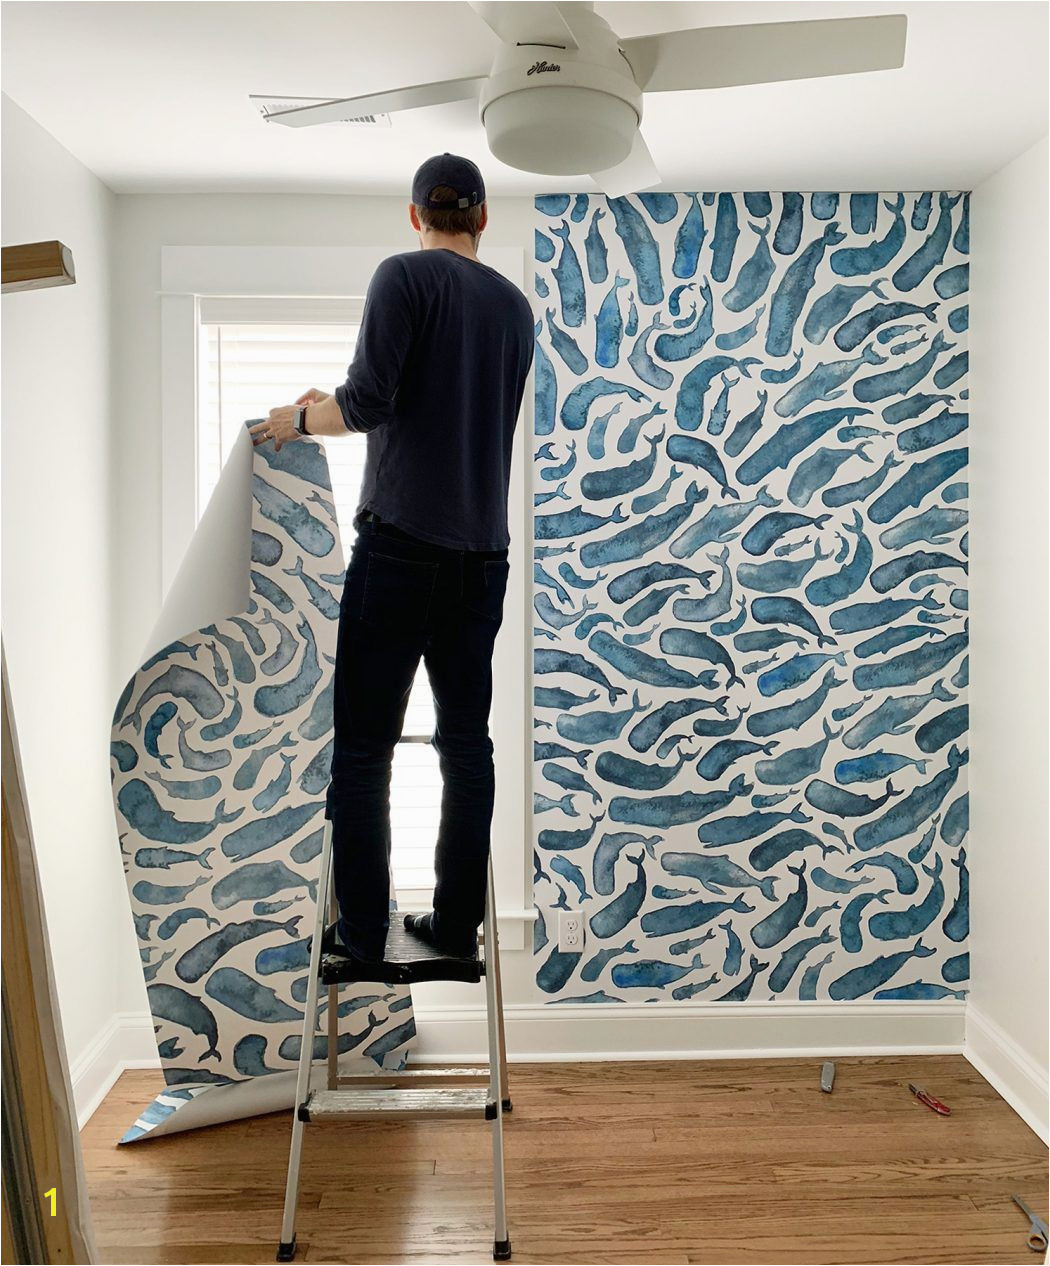 Society6 Removable Wall Mural Wallpaper With Whale In Small Room